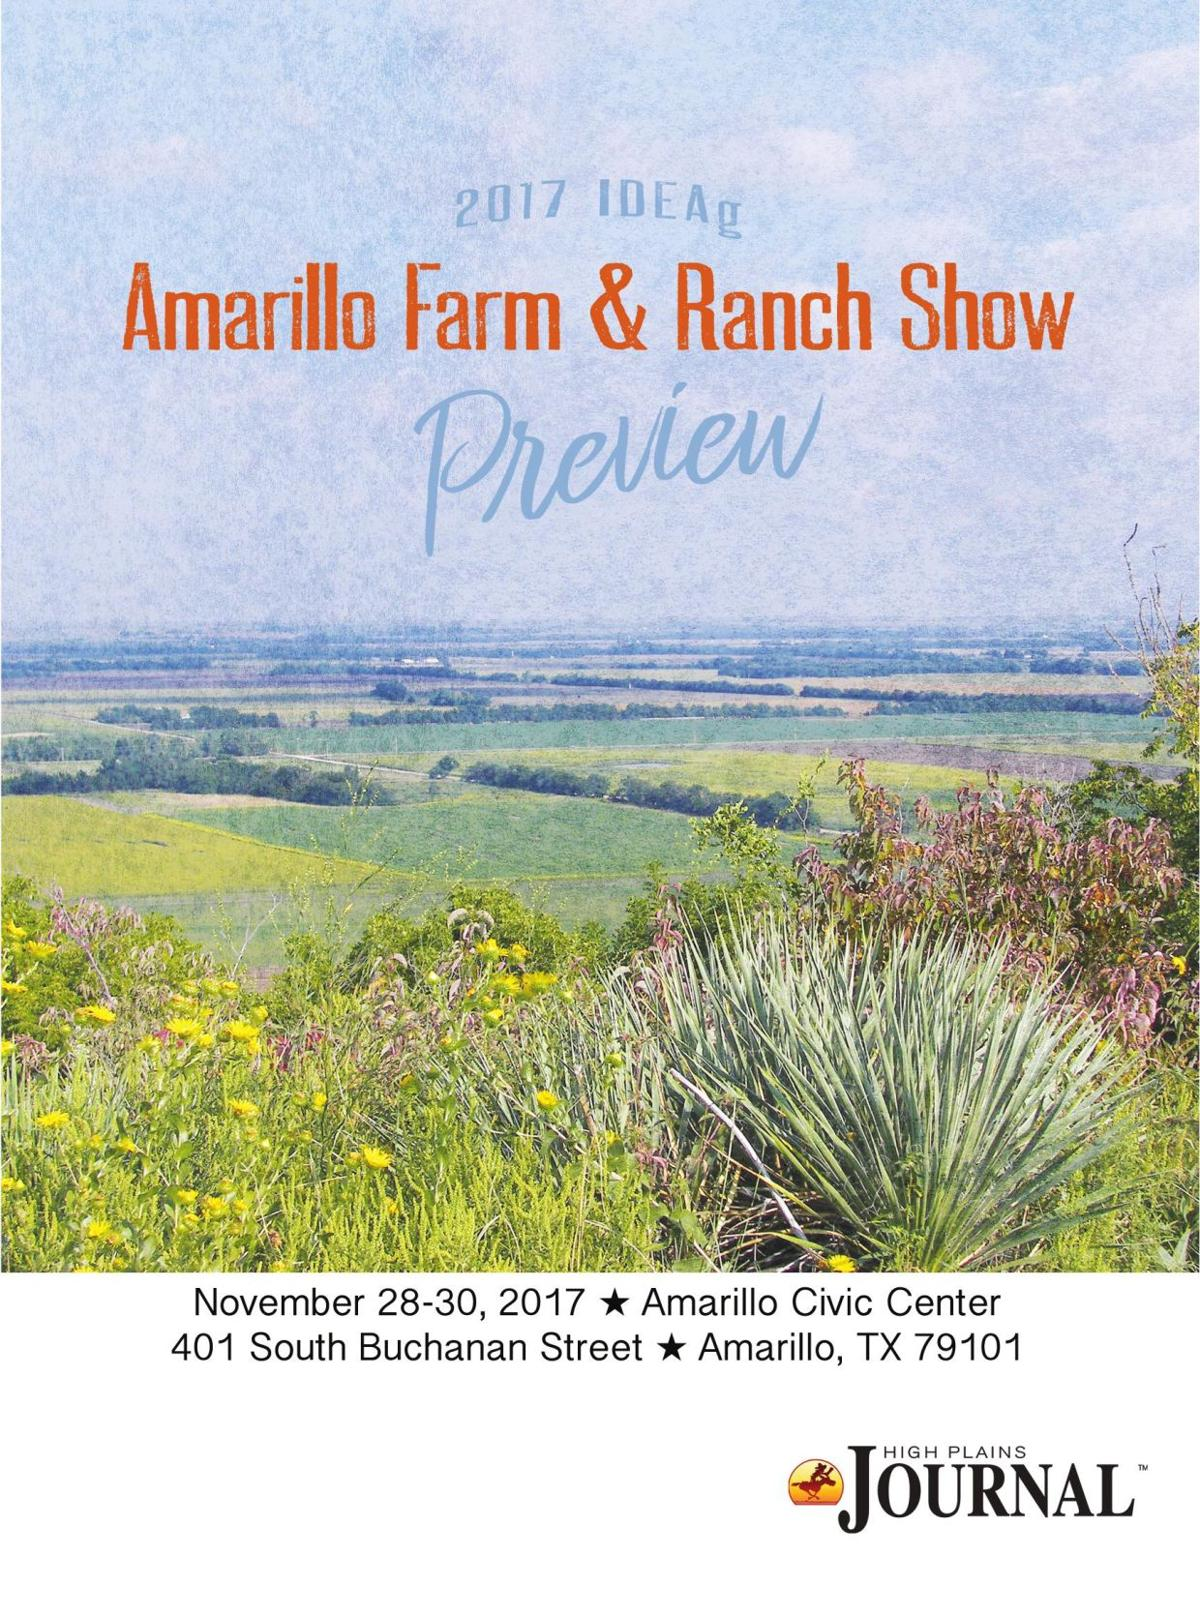 2017 Amarillo Farm Show